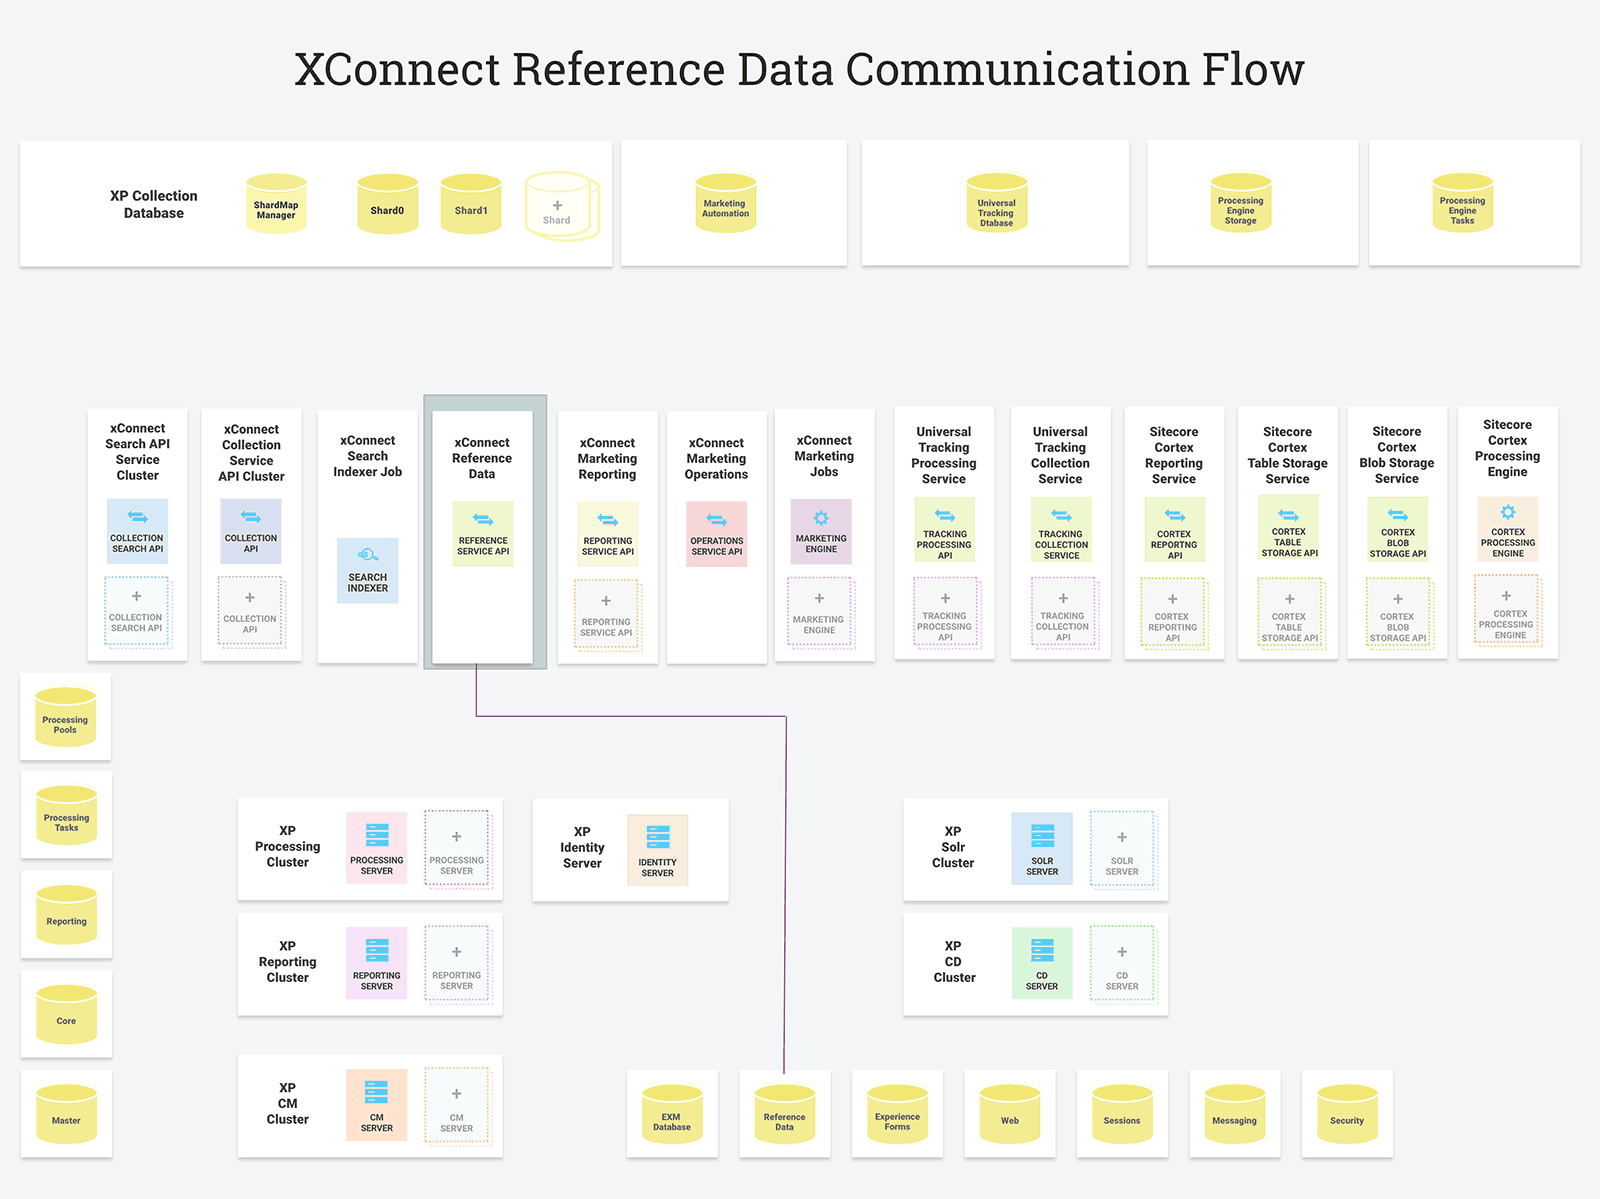 XConnect Reference Data Communication Flow